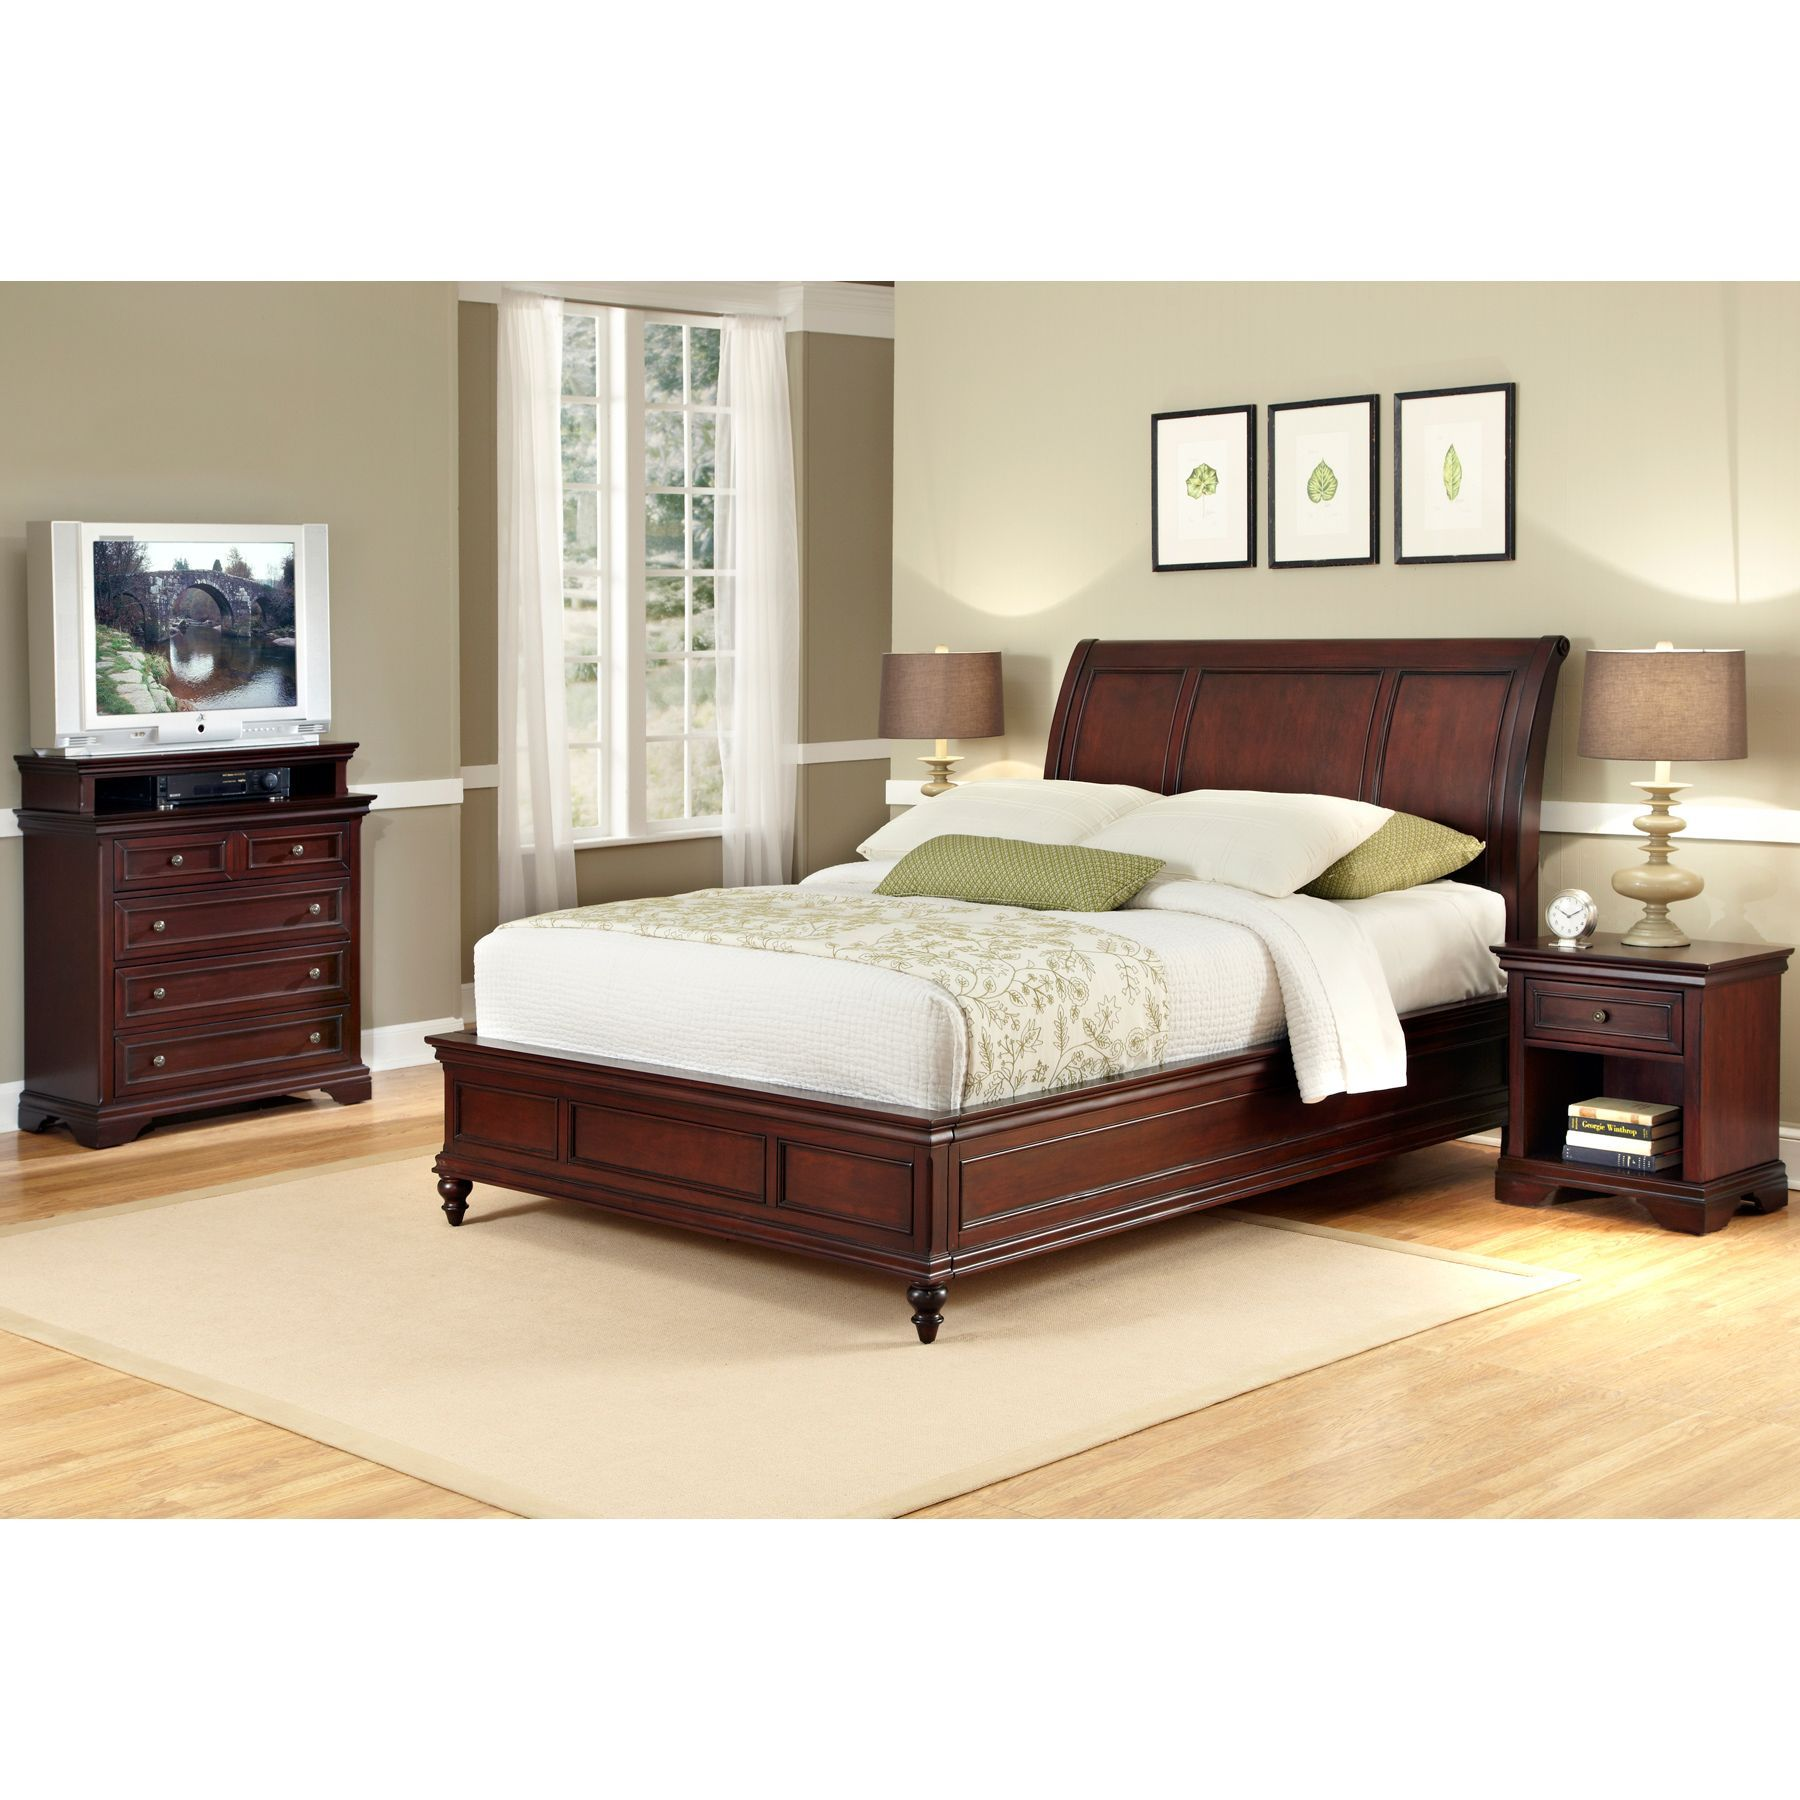 Home styles full bedroom set products pinterest products